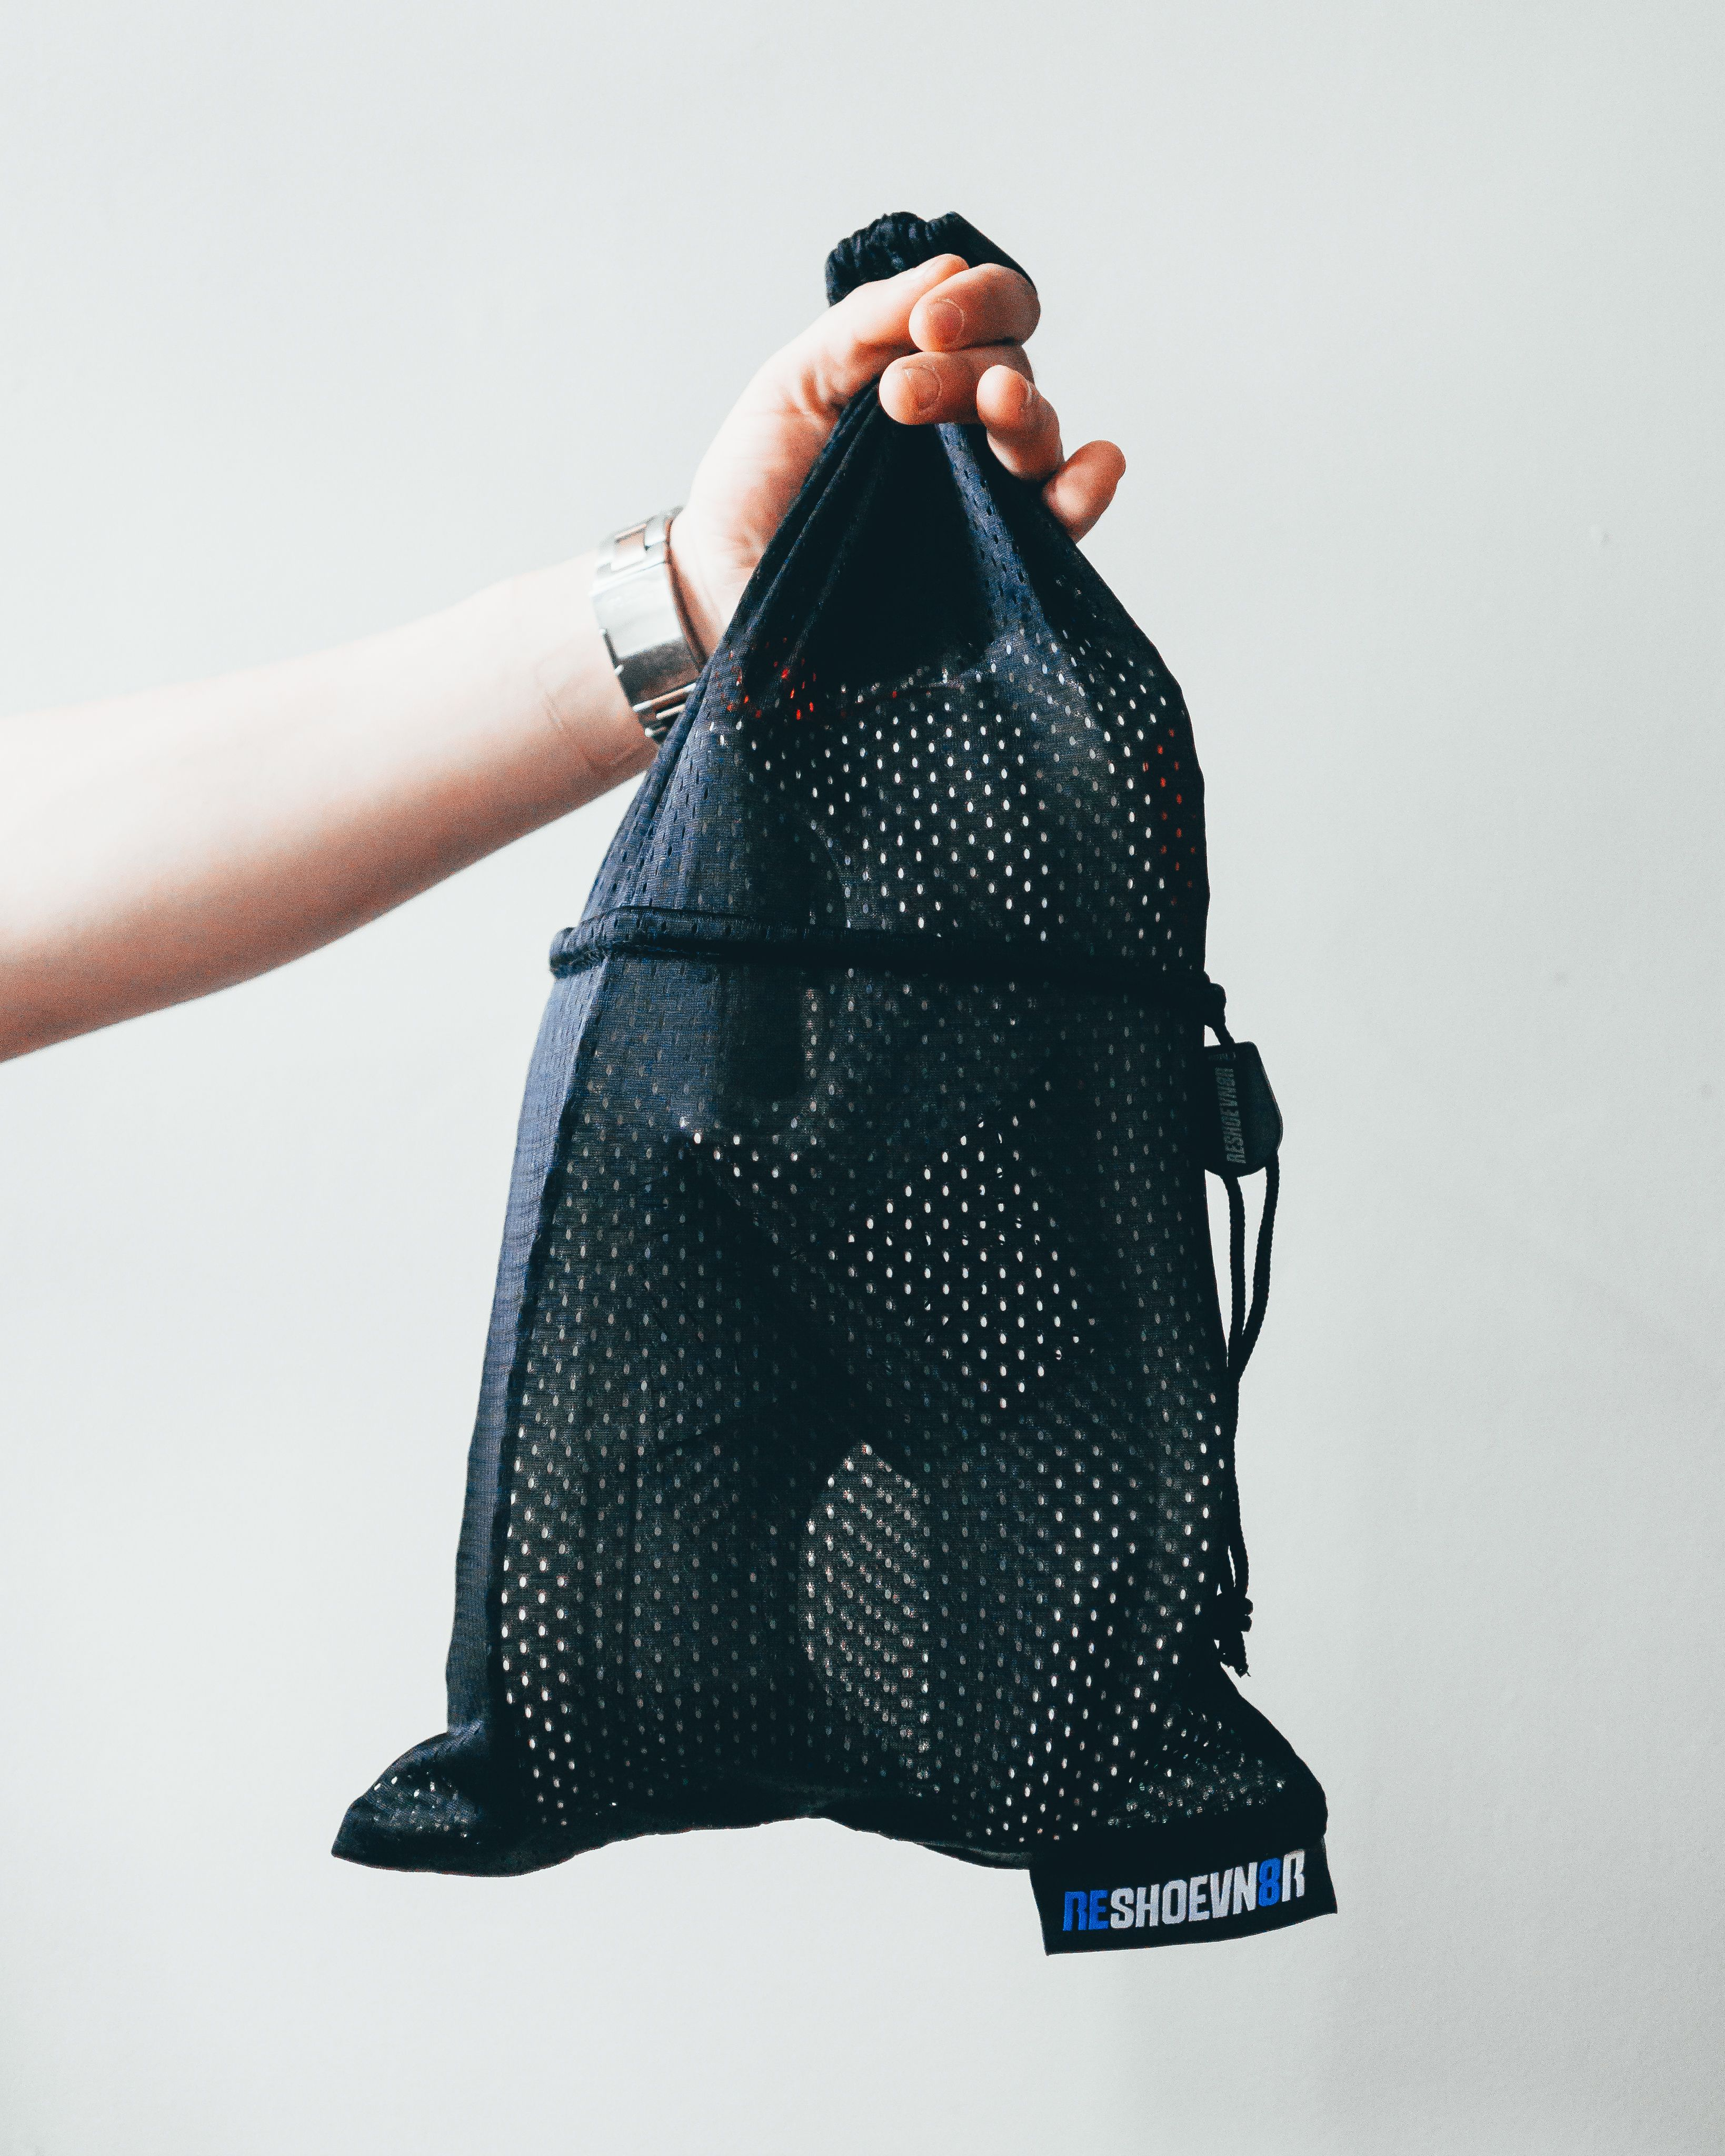 Sneaker Laundry Bag Products